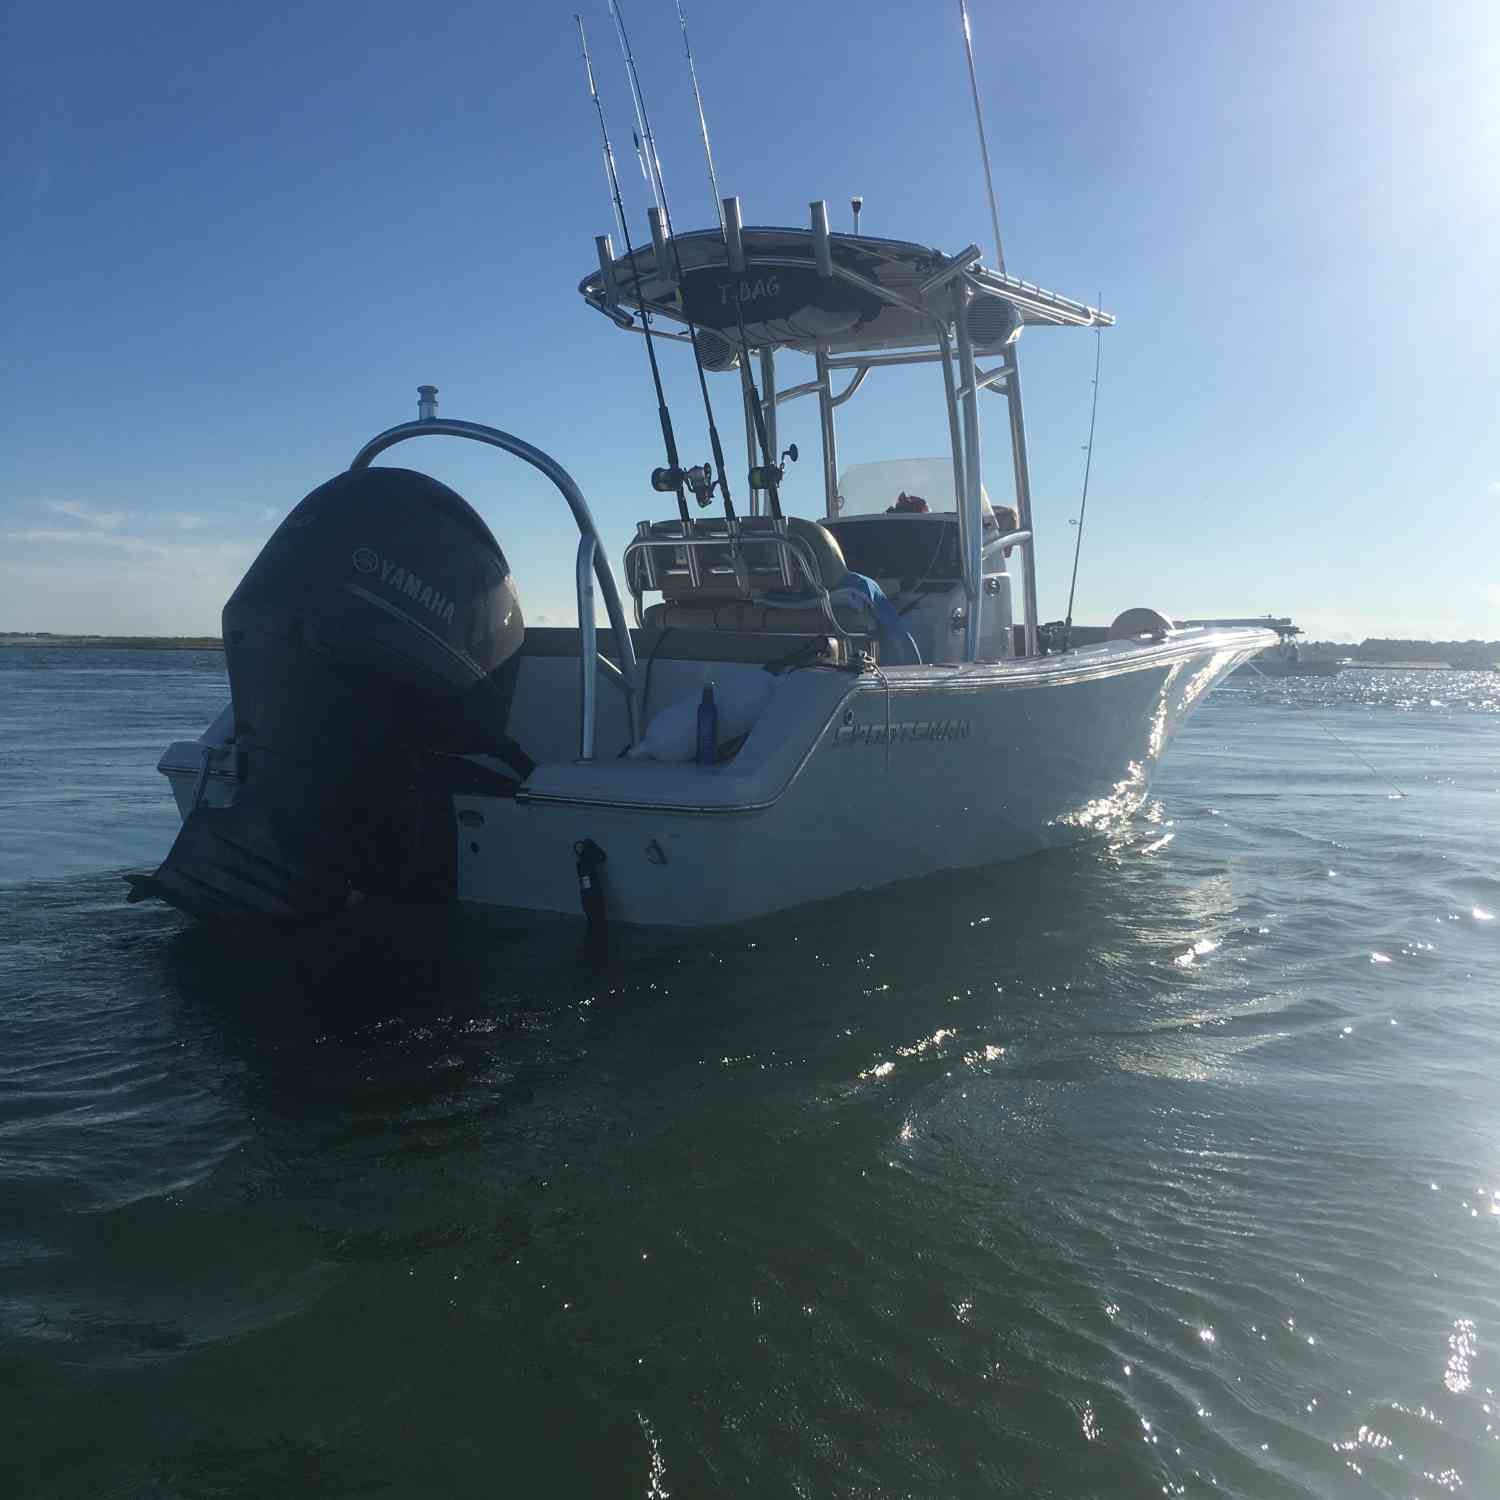 Title: Summer Sandbar Sunset - On board their Sportsman Heritage 211 Center Console - Location: Wrightsville Beach, NC. Participating in the Photo Contest #SportsmanFebruary2019